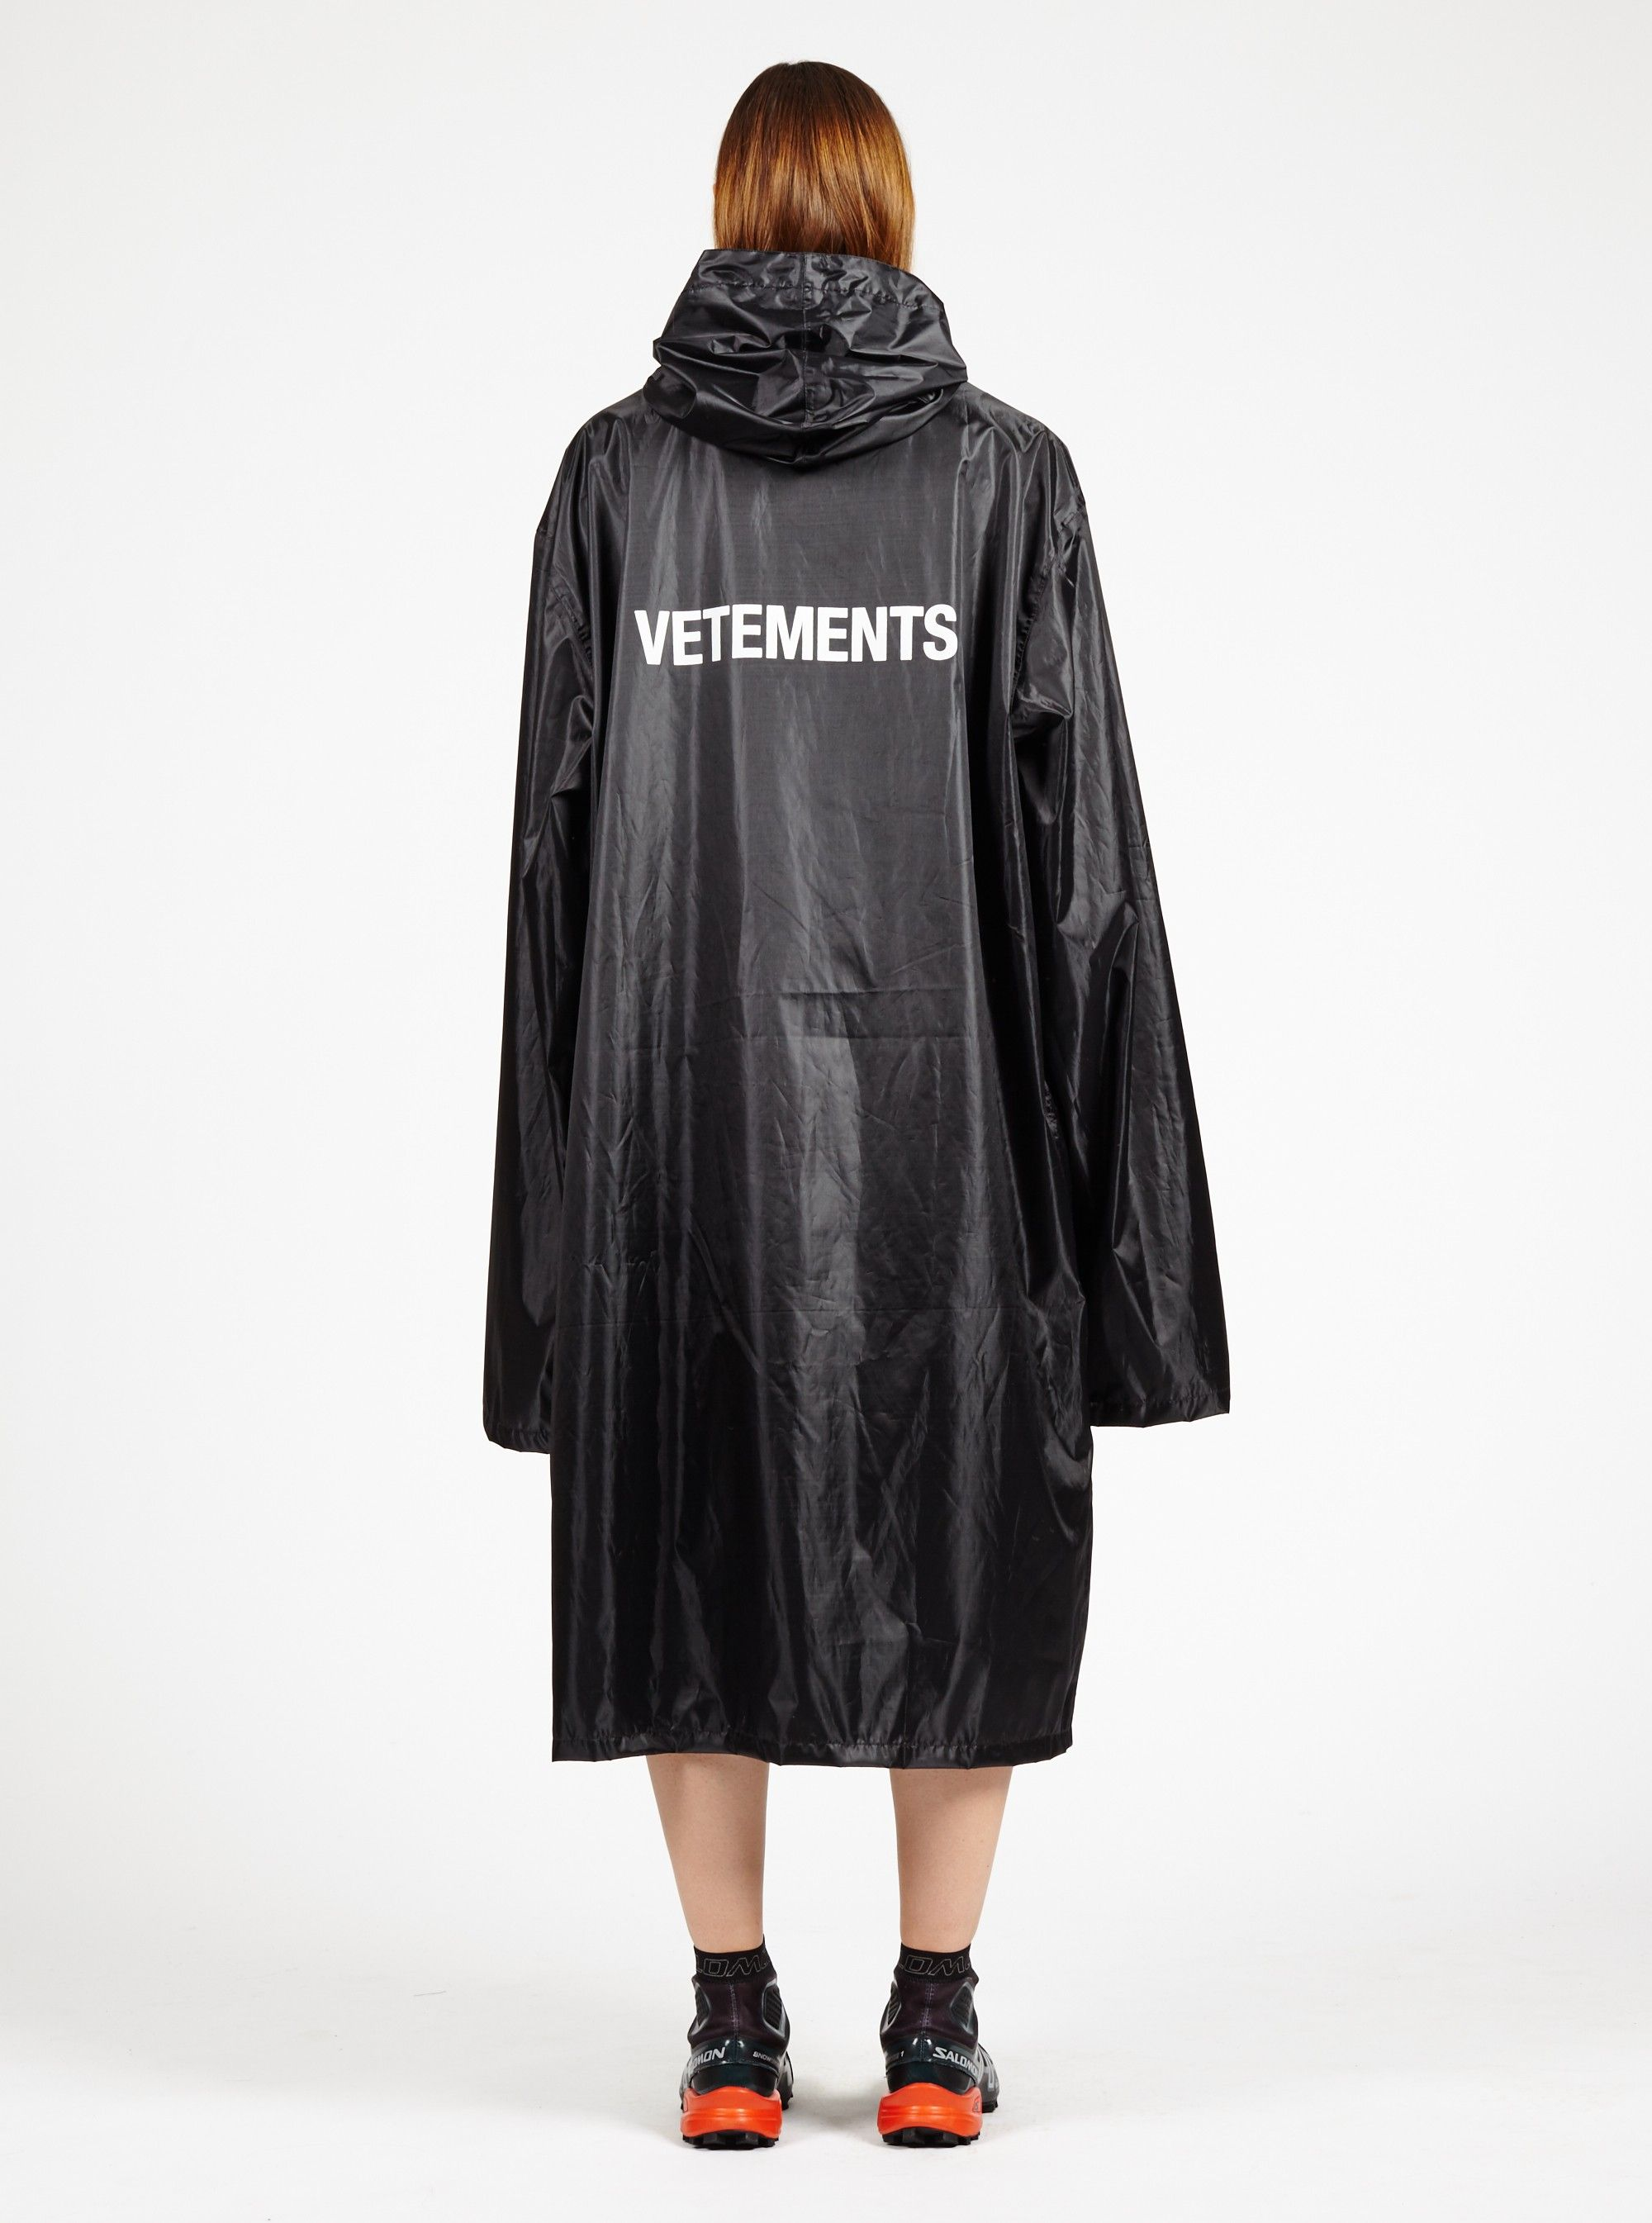 SS16_Vetements_SS16_Selection1